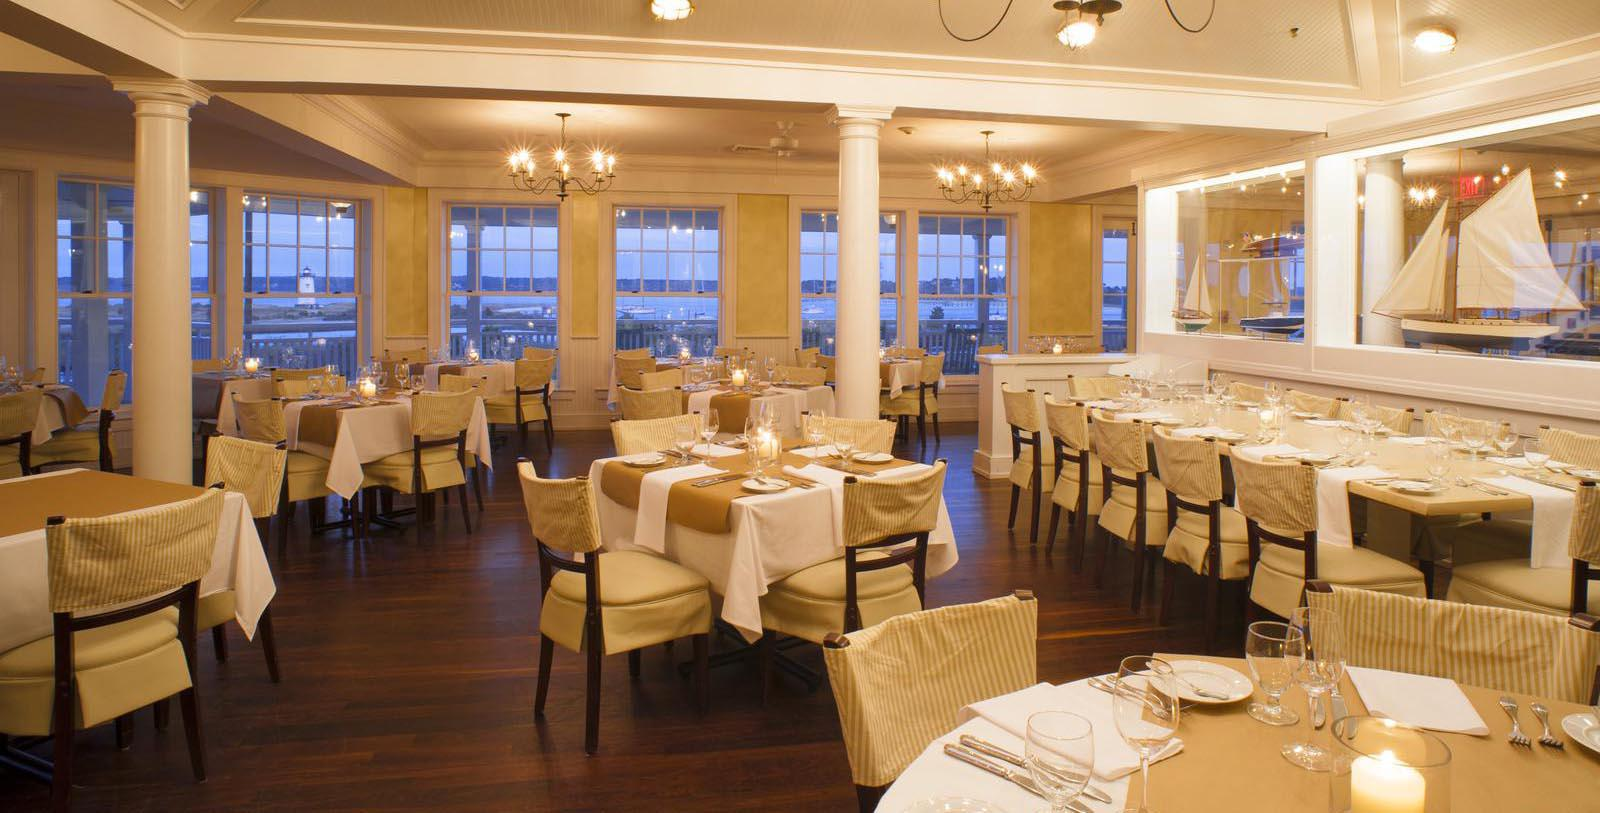 Image of dining room Harbor View Hotel of Martha's Vineyard, 1891, Member of Historic Hotels of America, Edgartown, Massachusetts, Experience